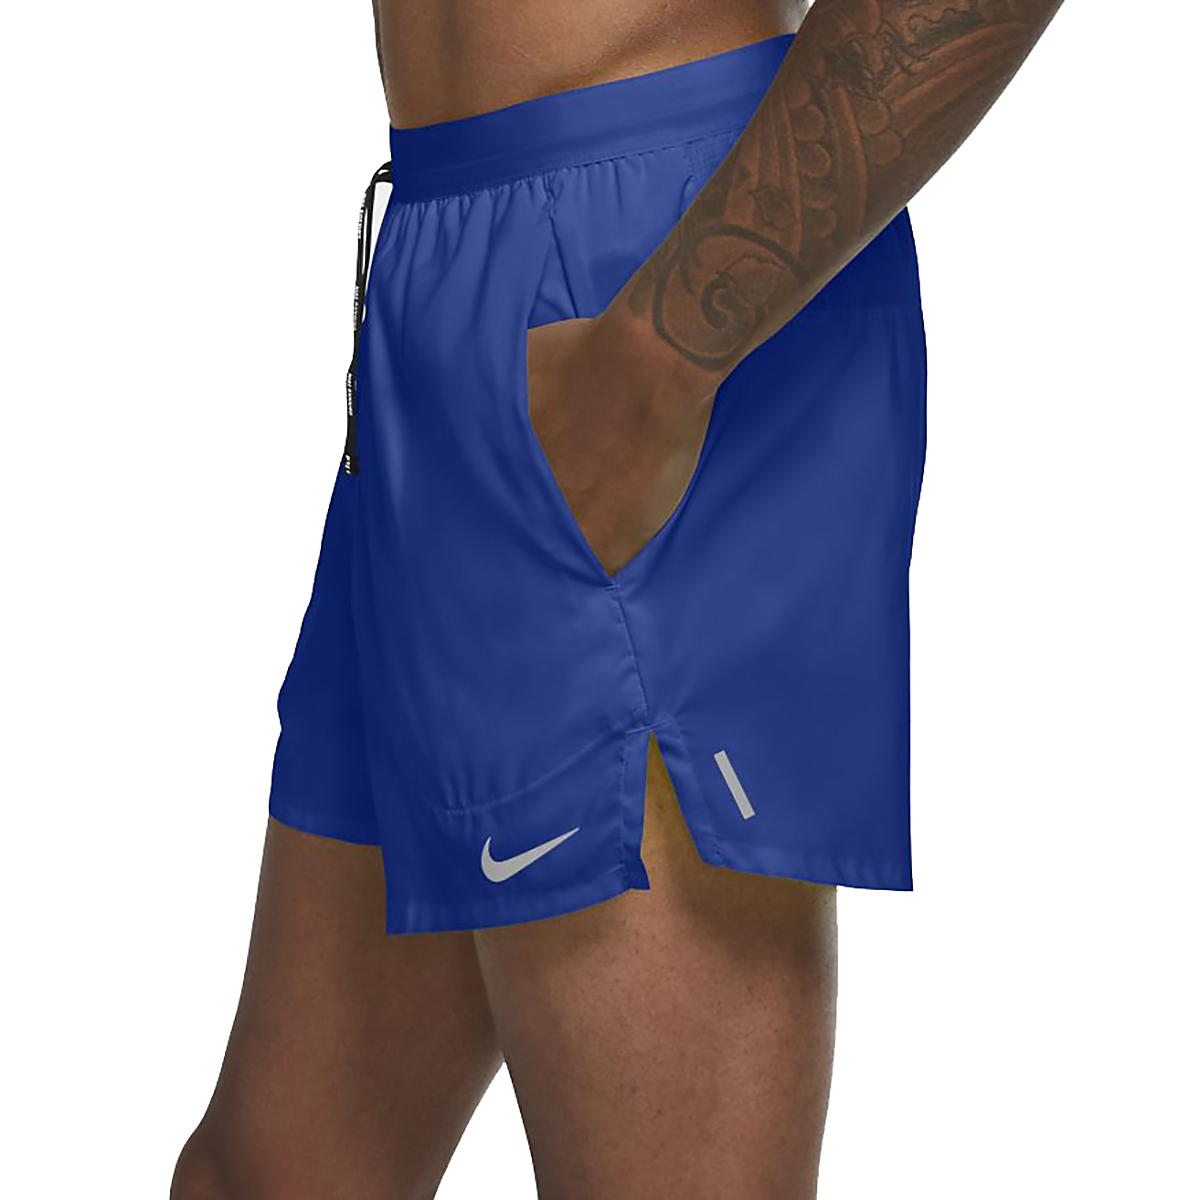 """Men's Nike Flex Stride 5"""" Brief Running Shorts - Color: Game Royal/Reflective Silver - Size: S, Game Royal/Reflective Silver, large, image 3"""